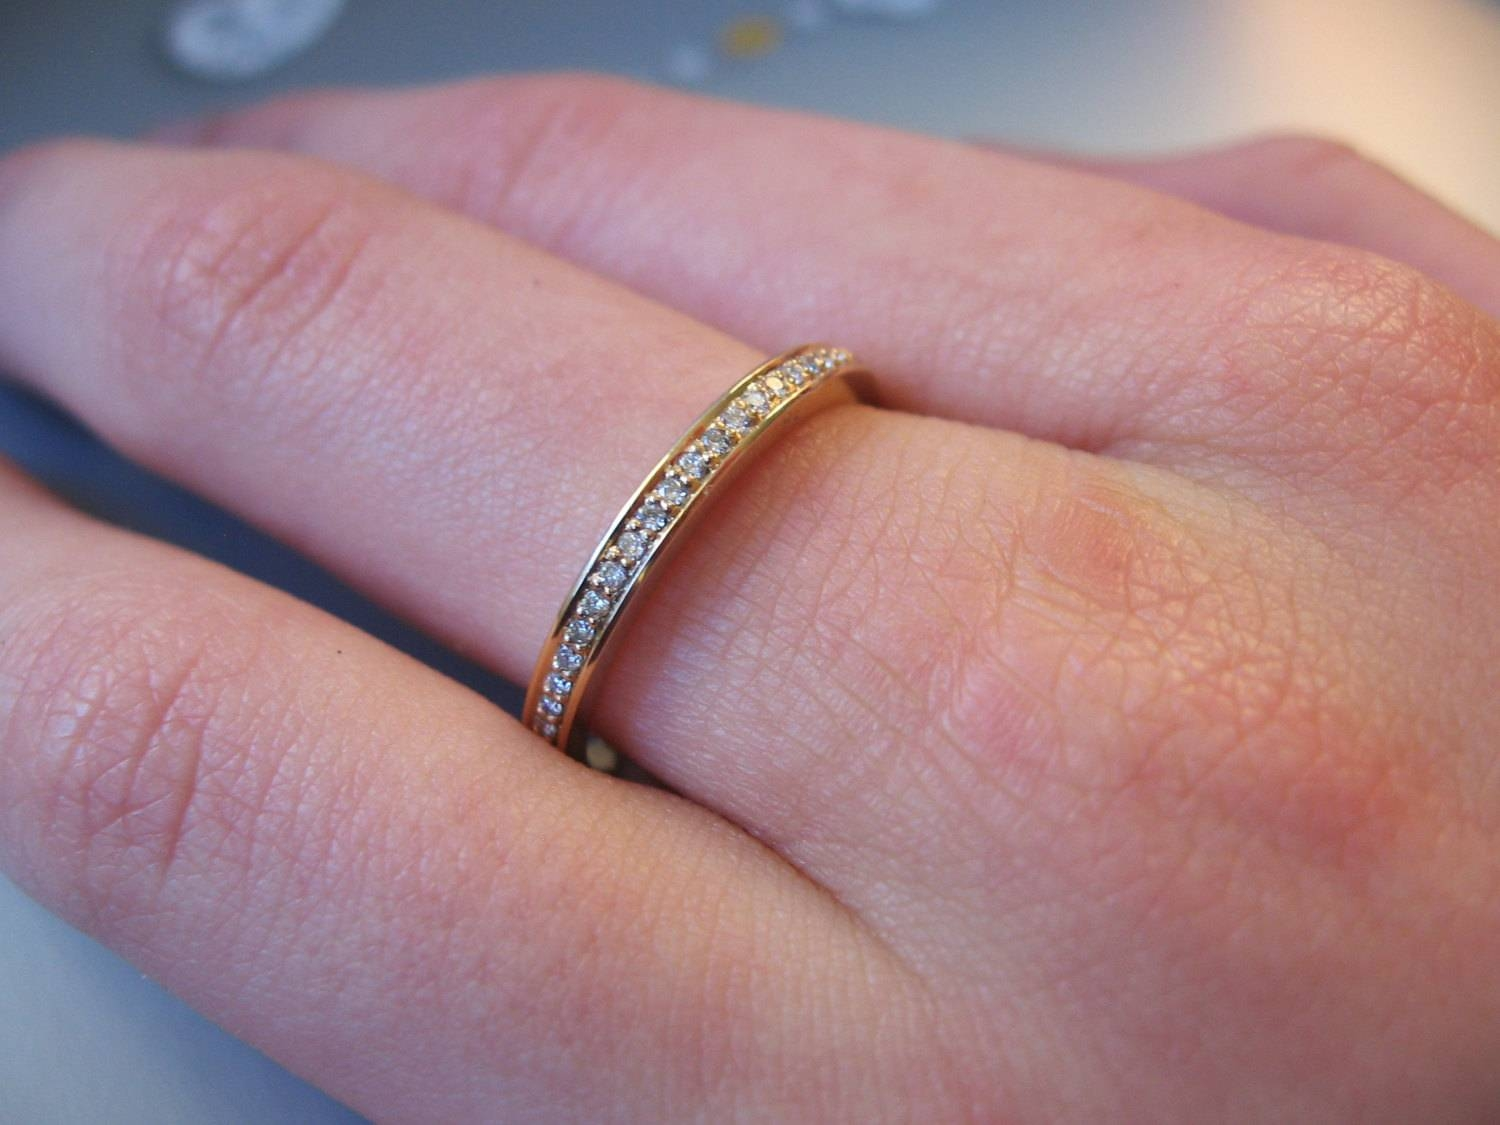 Micro Pave Diamond Eternity Ring 2mm In 14k Gold, Handmade Diamond In Eternity Band Wedding Rings (View 8 of 15)